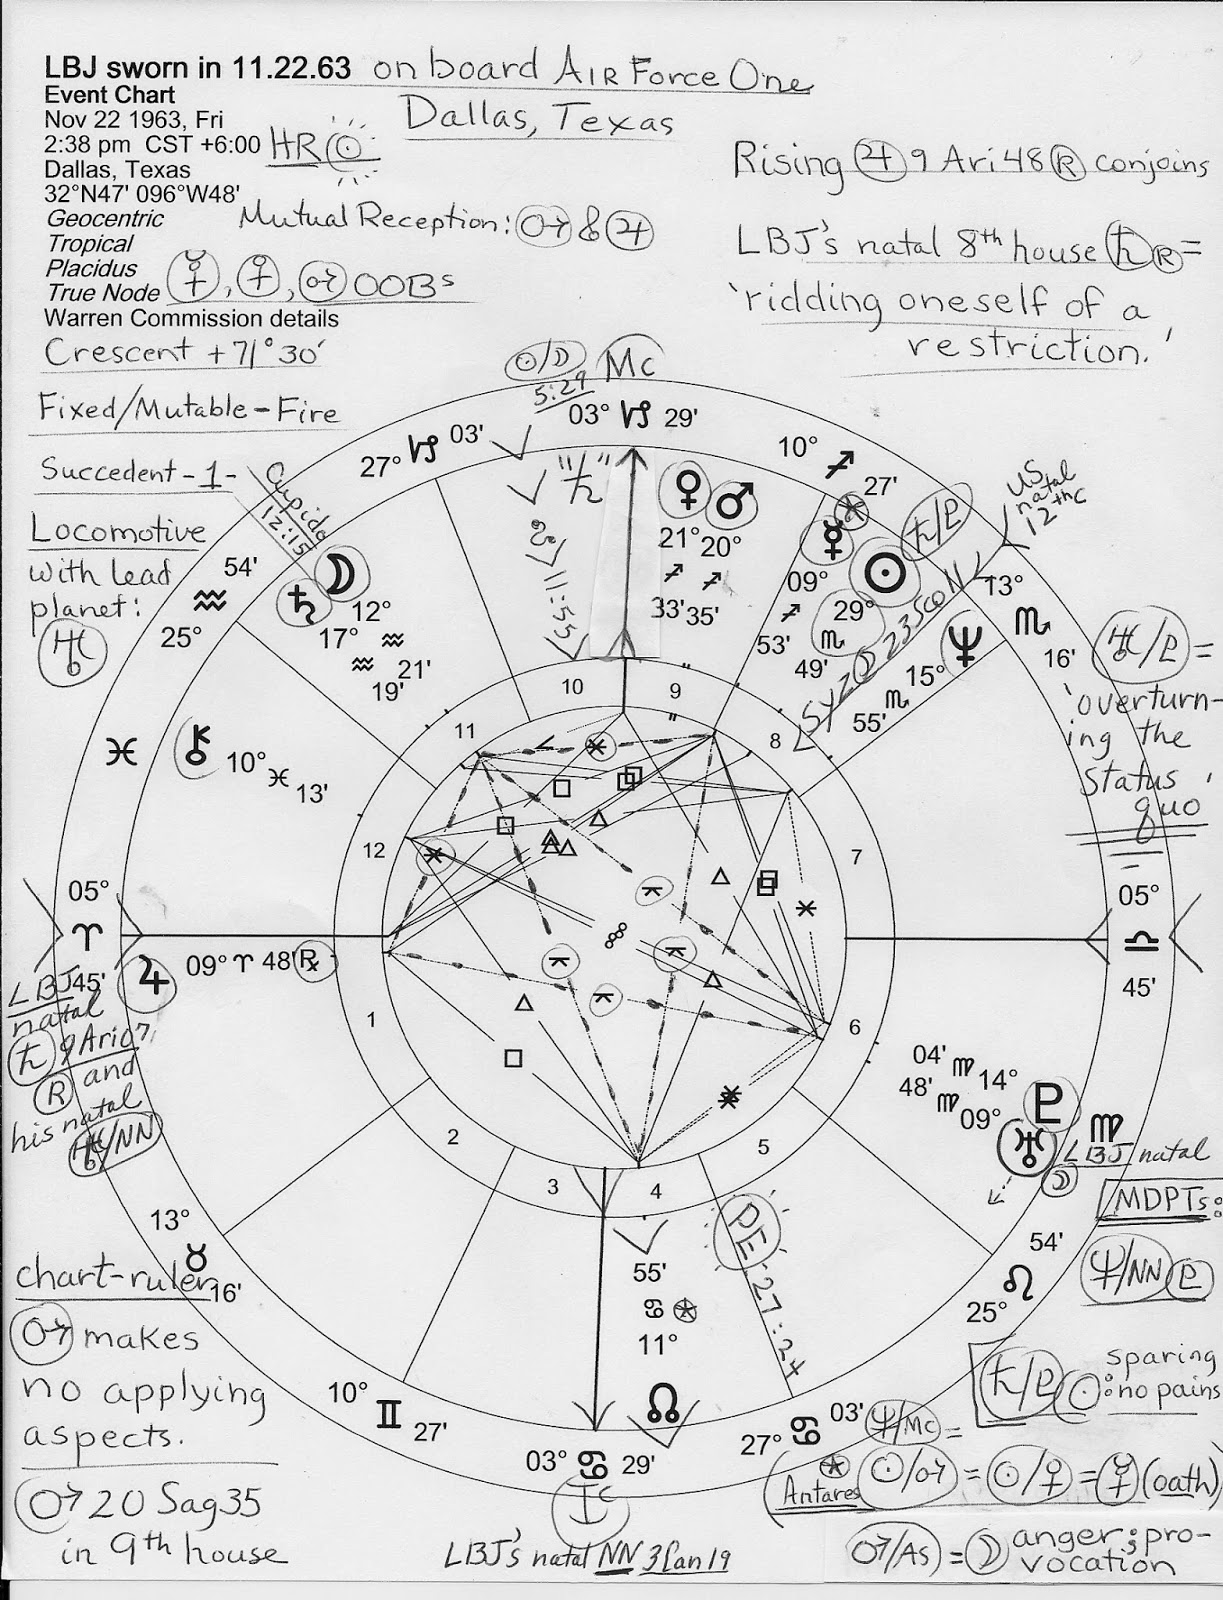 Hour sun mercury venus and mars are oobs lbj s natal saturn is his first natal planet to rise along with transit jupiter 9ari48 rx and lbj s natal